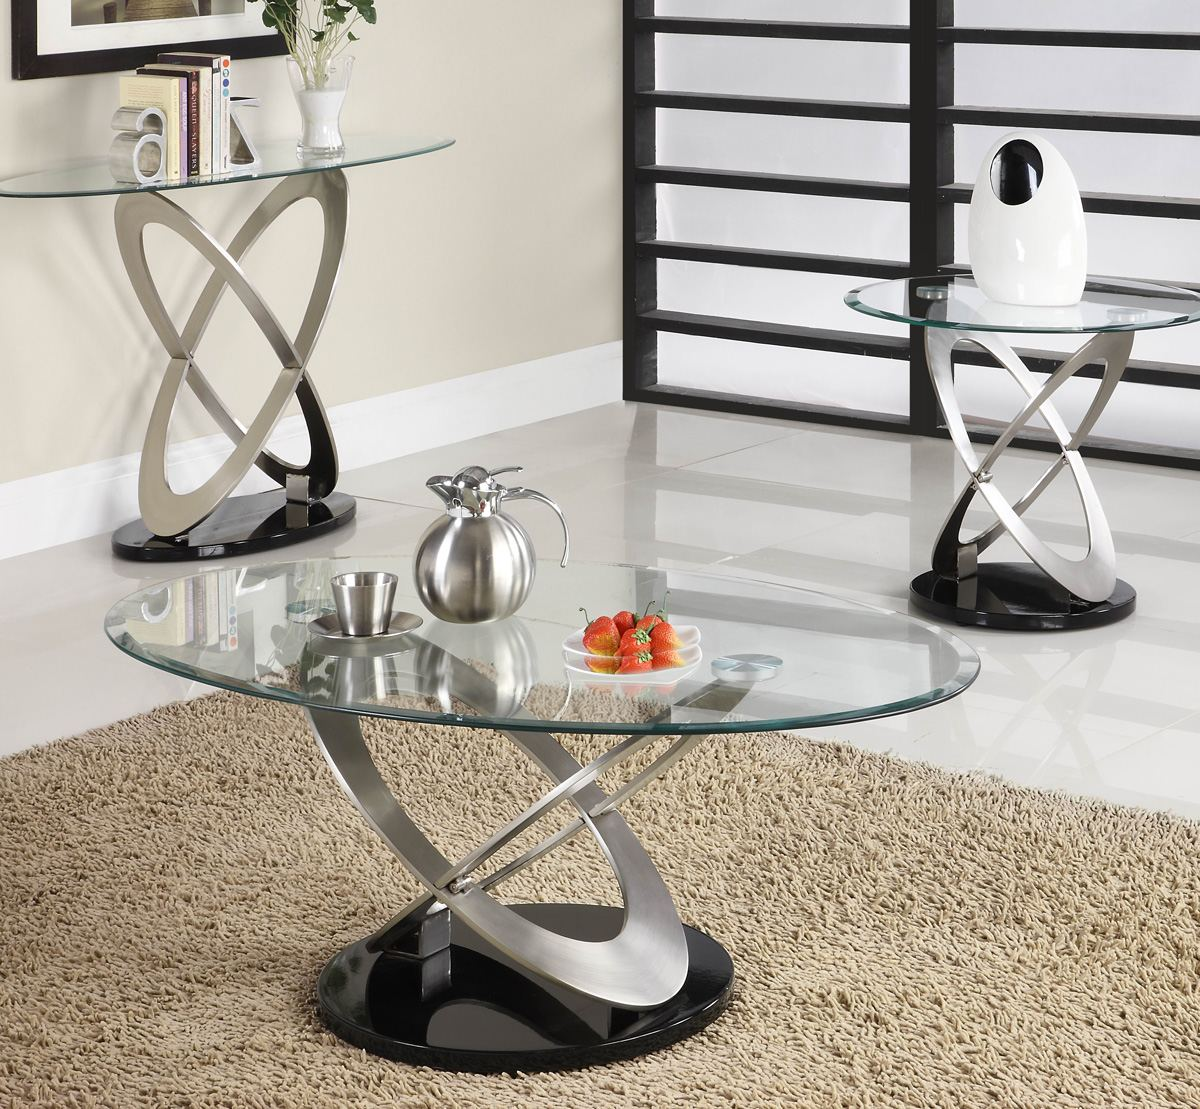 sofa table end set chaise lounge dark black wide stone and glass console large white with wood top accent tables living room full size modern furniture mirrored patio dining sets